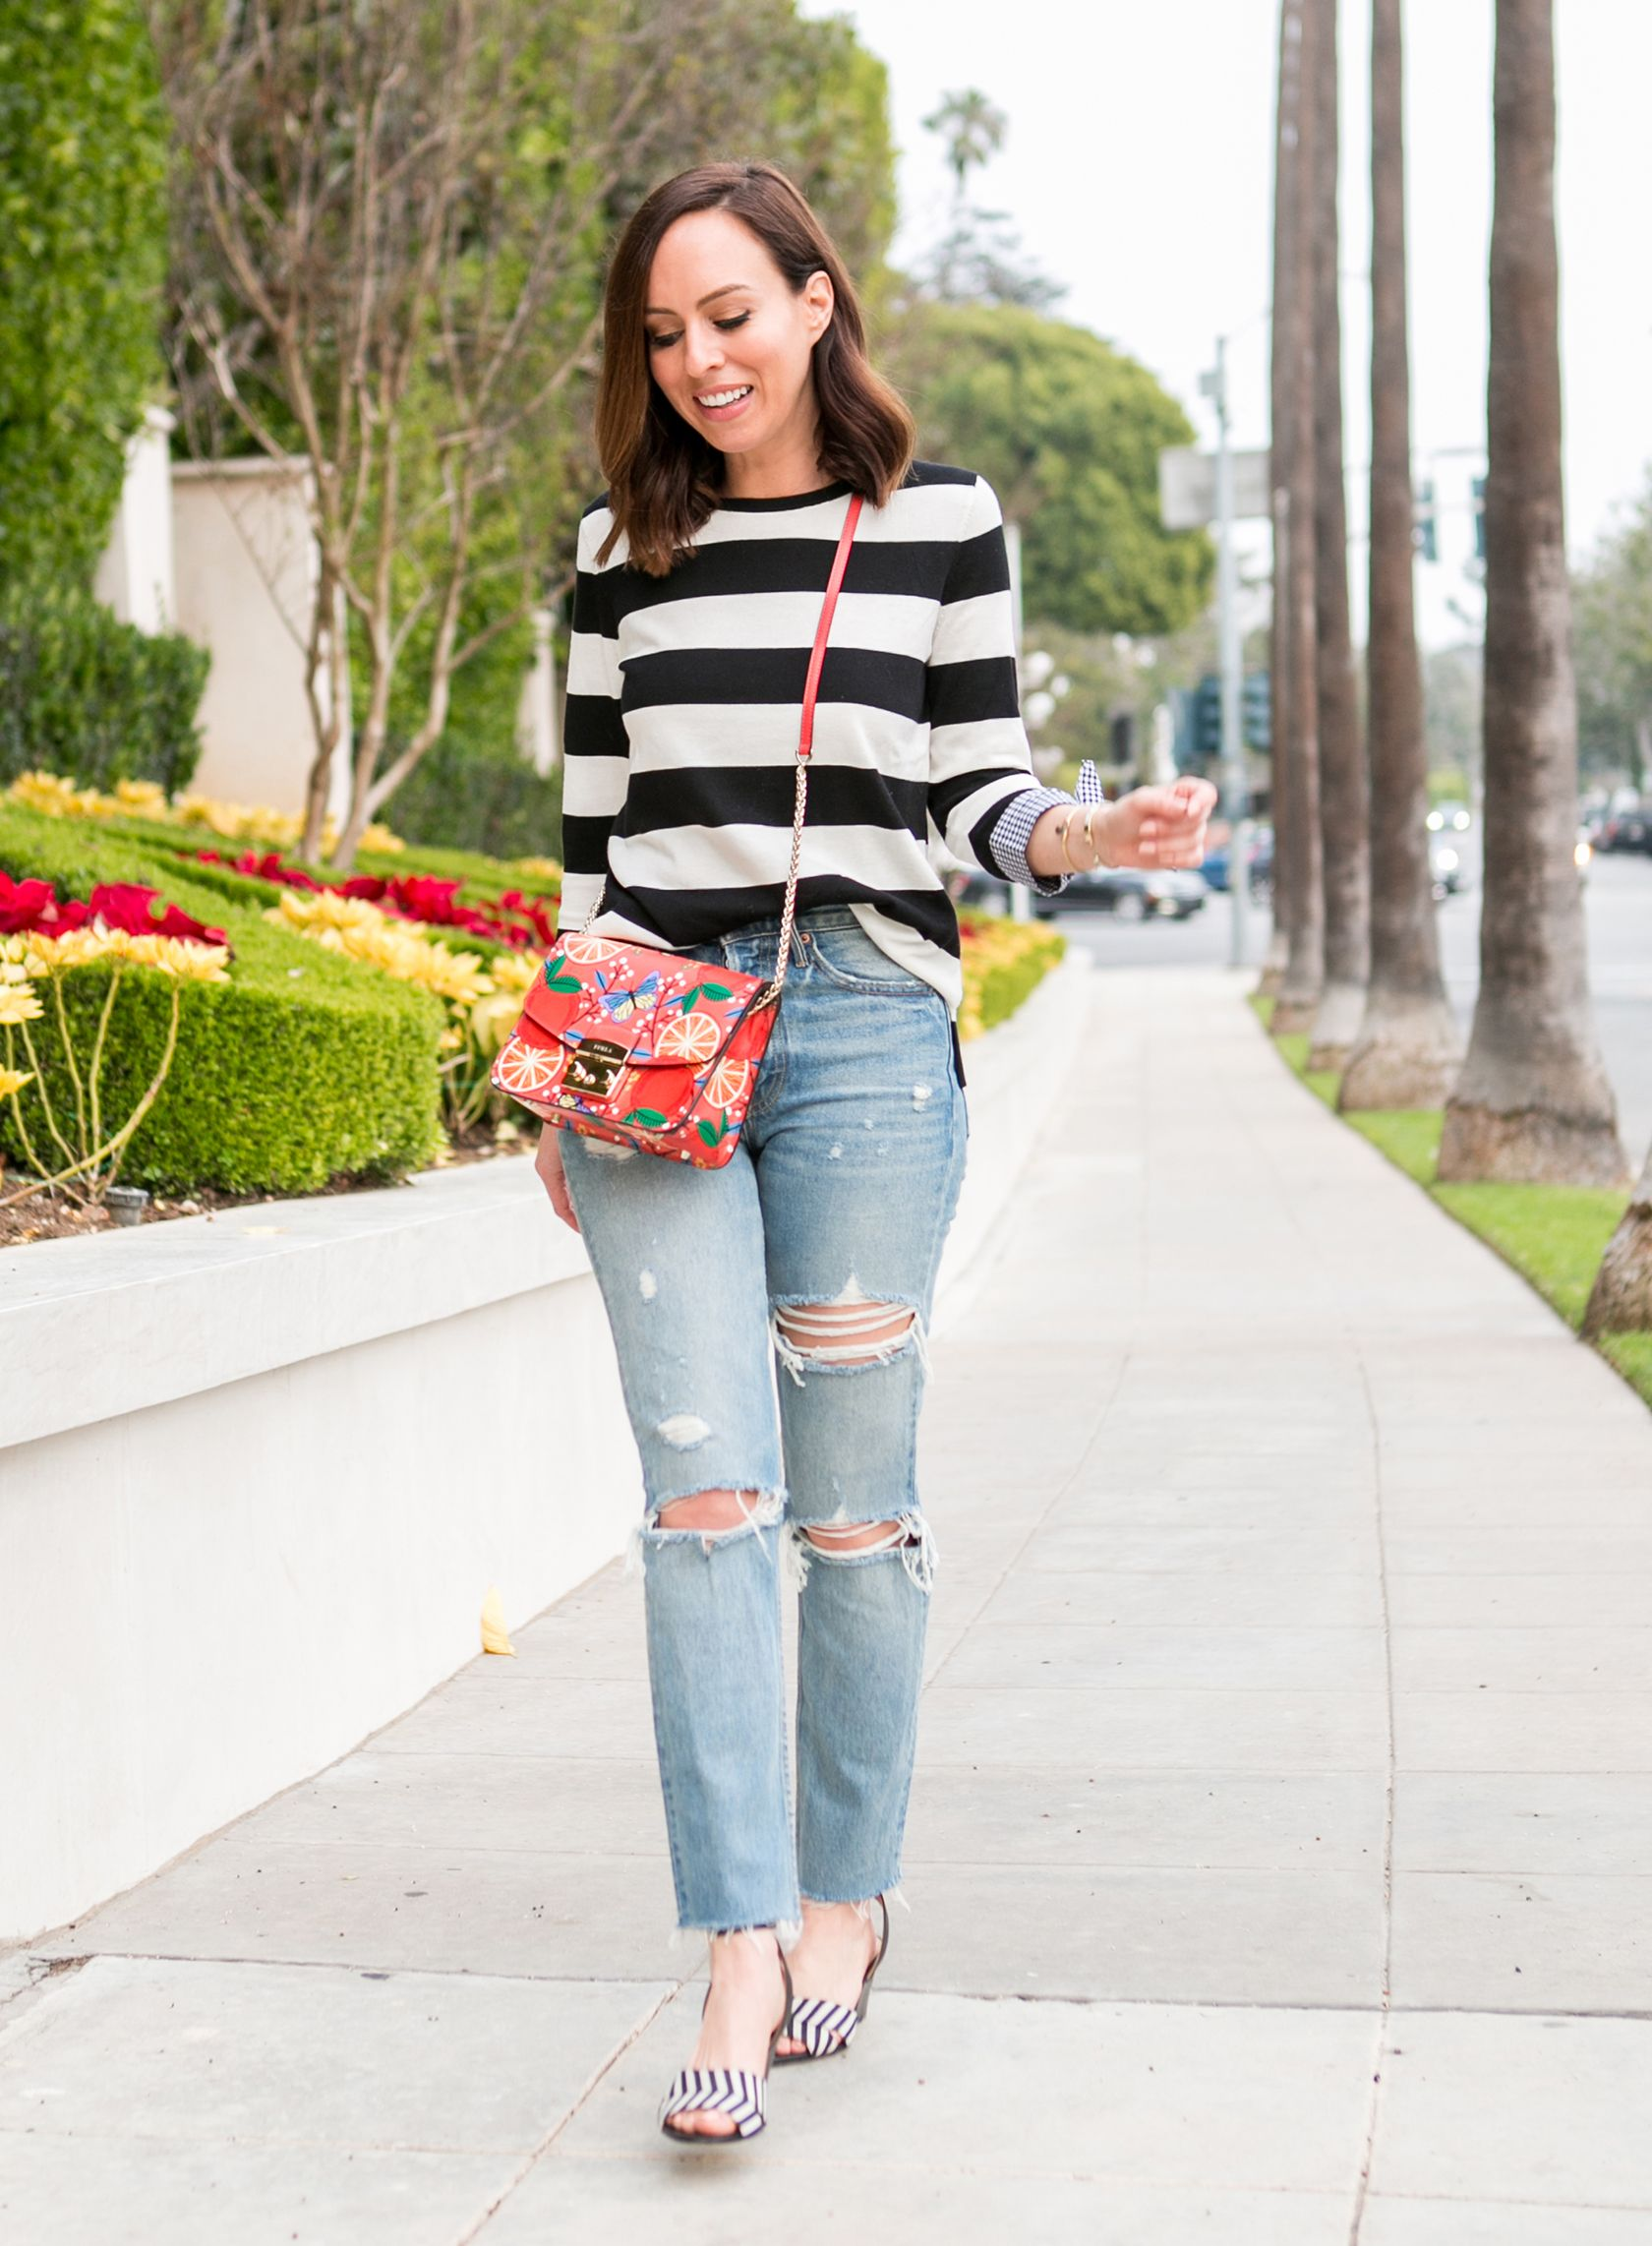 d4fc2370ed6b Sydne Style shows how to mix prints with casual outfit ideas in grlfrnd  denim  stripes  jeans  denim  mixedprints  prints  casualoutfits